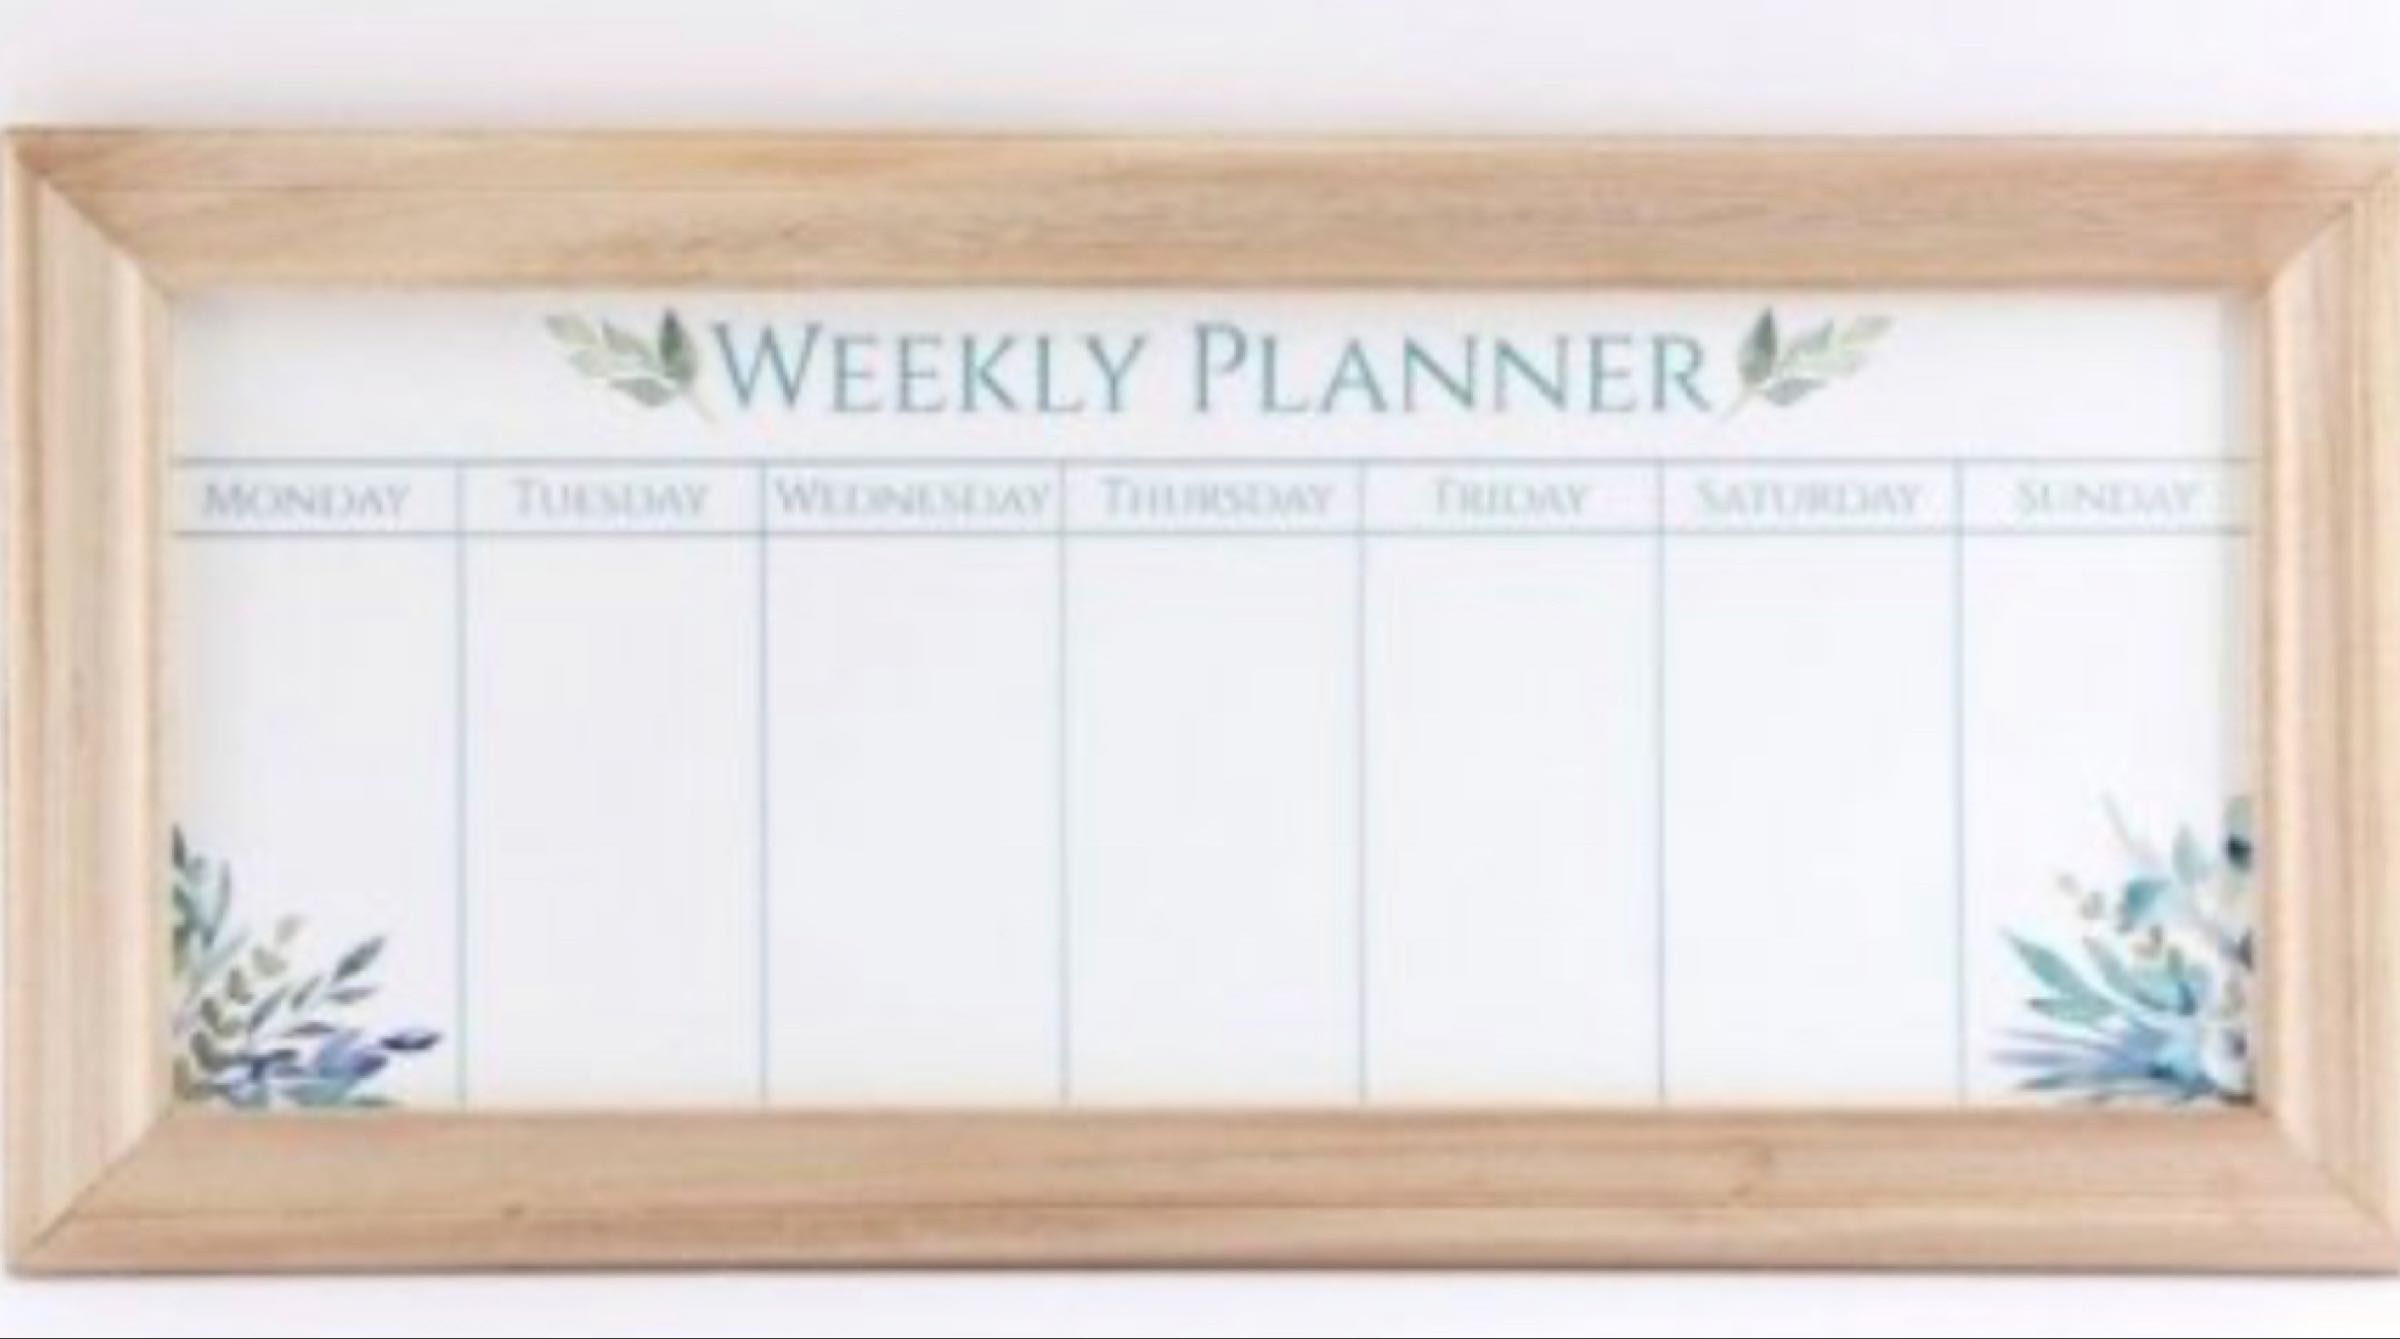 Olive Grove Weekly Planner Whiteboard 67cm